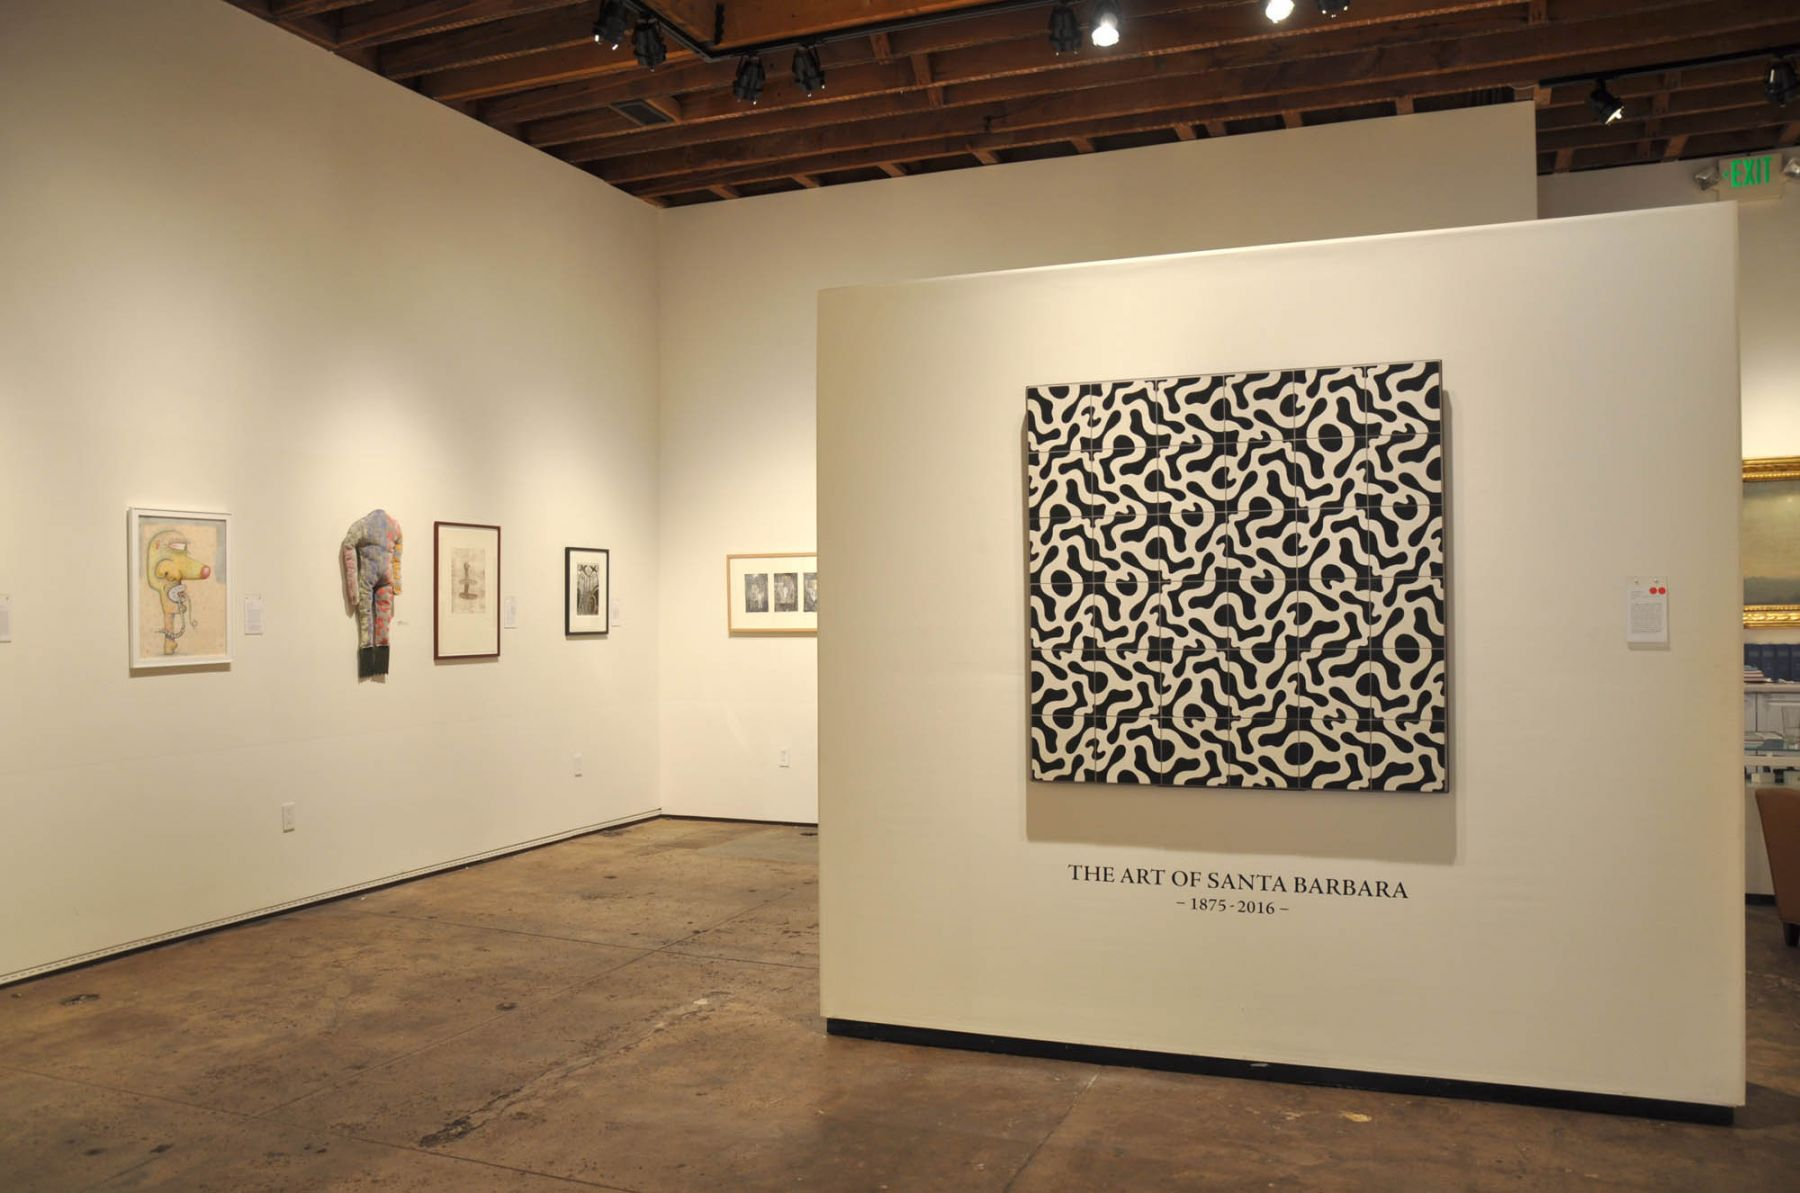 The Art of Santa Barbara, Keith Puccinelli, Dane Goodman, Colin Gray, Rafael Perea de la Cabada, Jeff Shelton